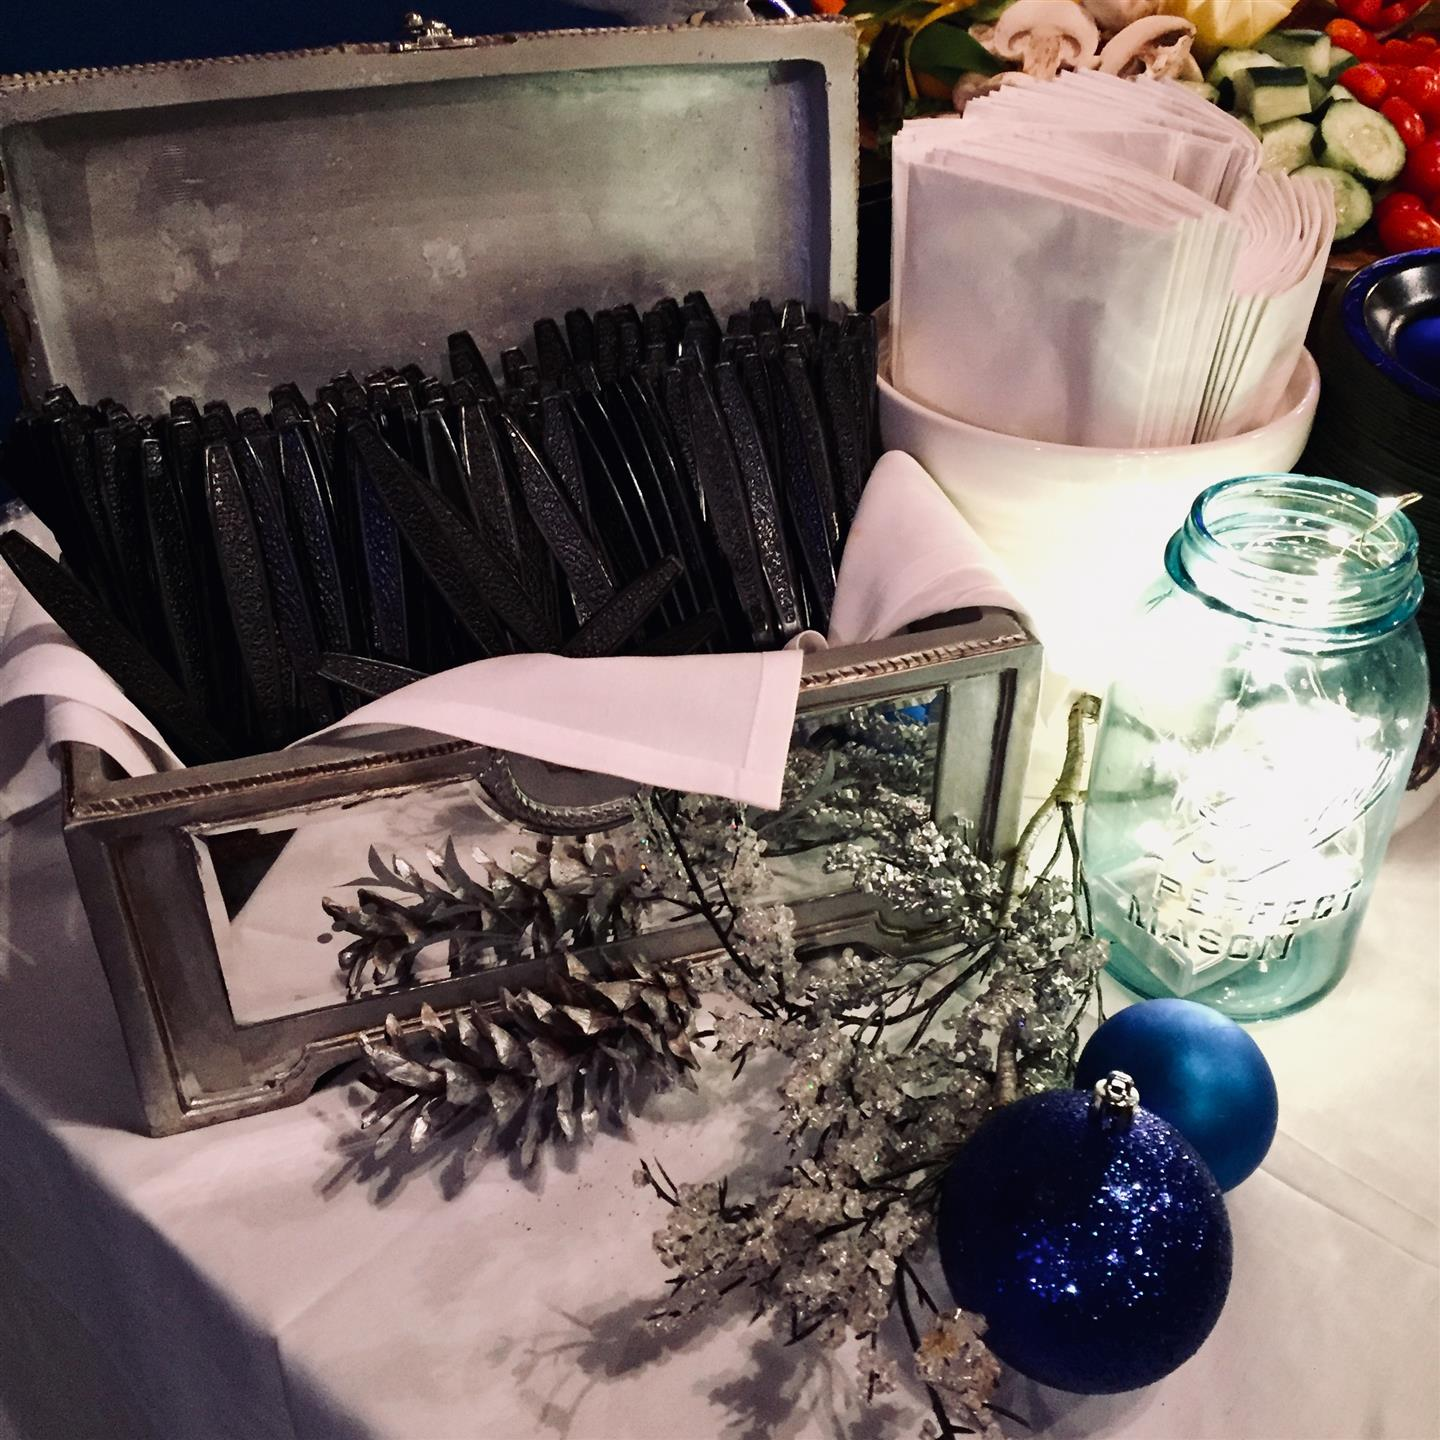 Winter decorations with silverware inside